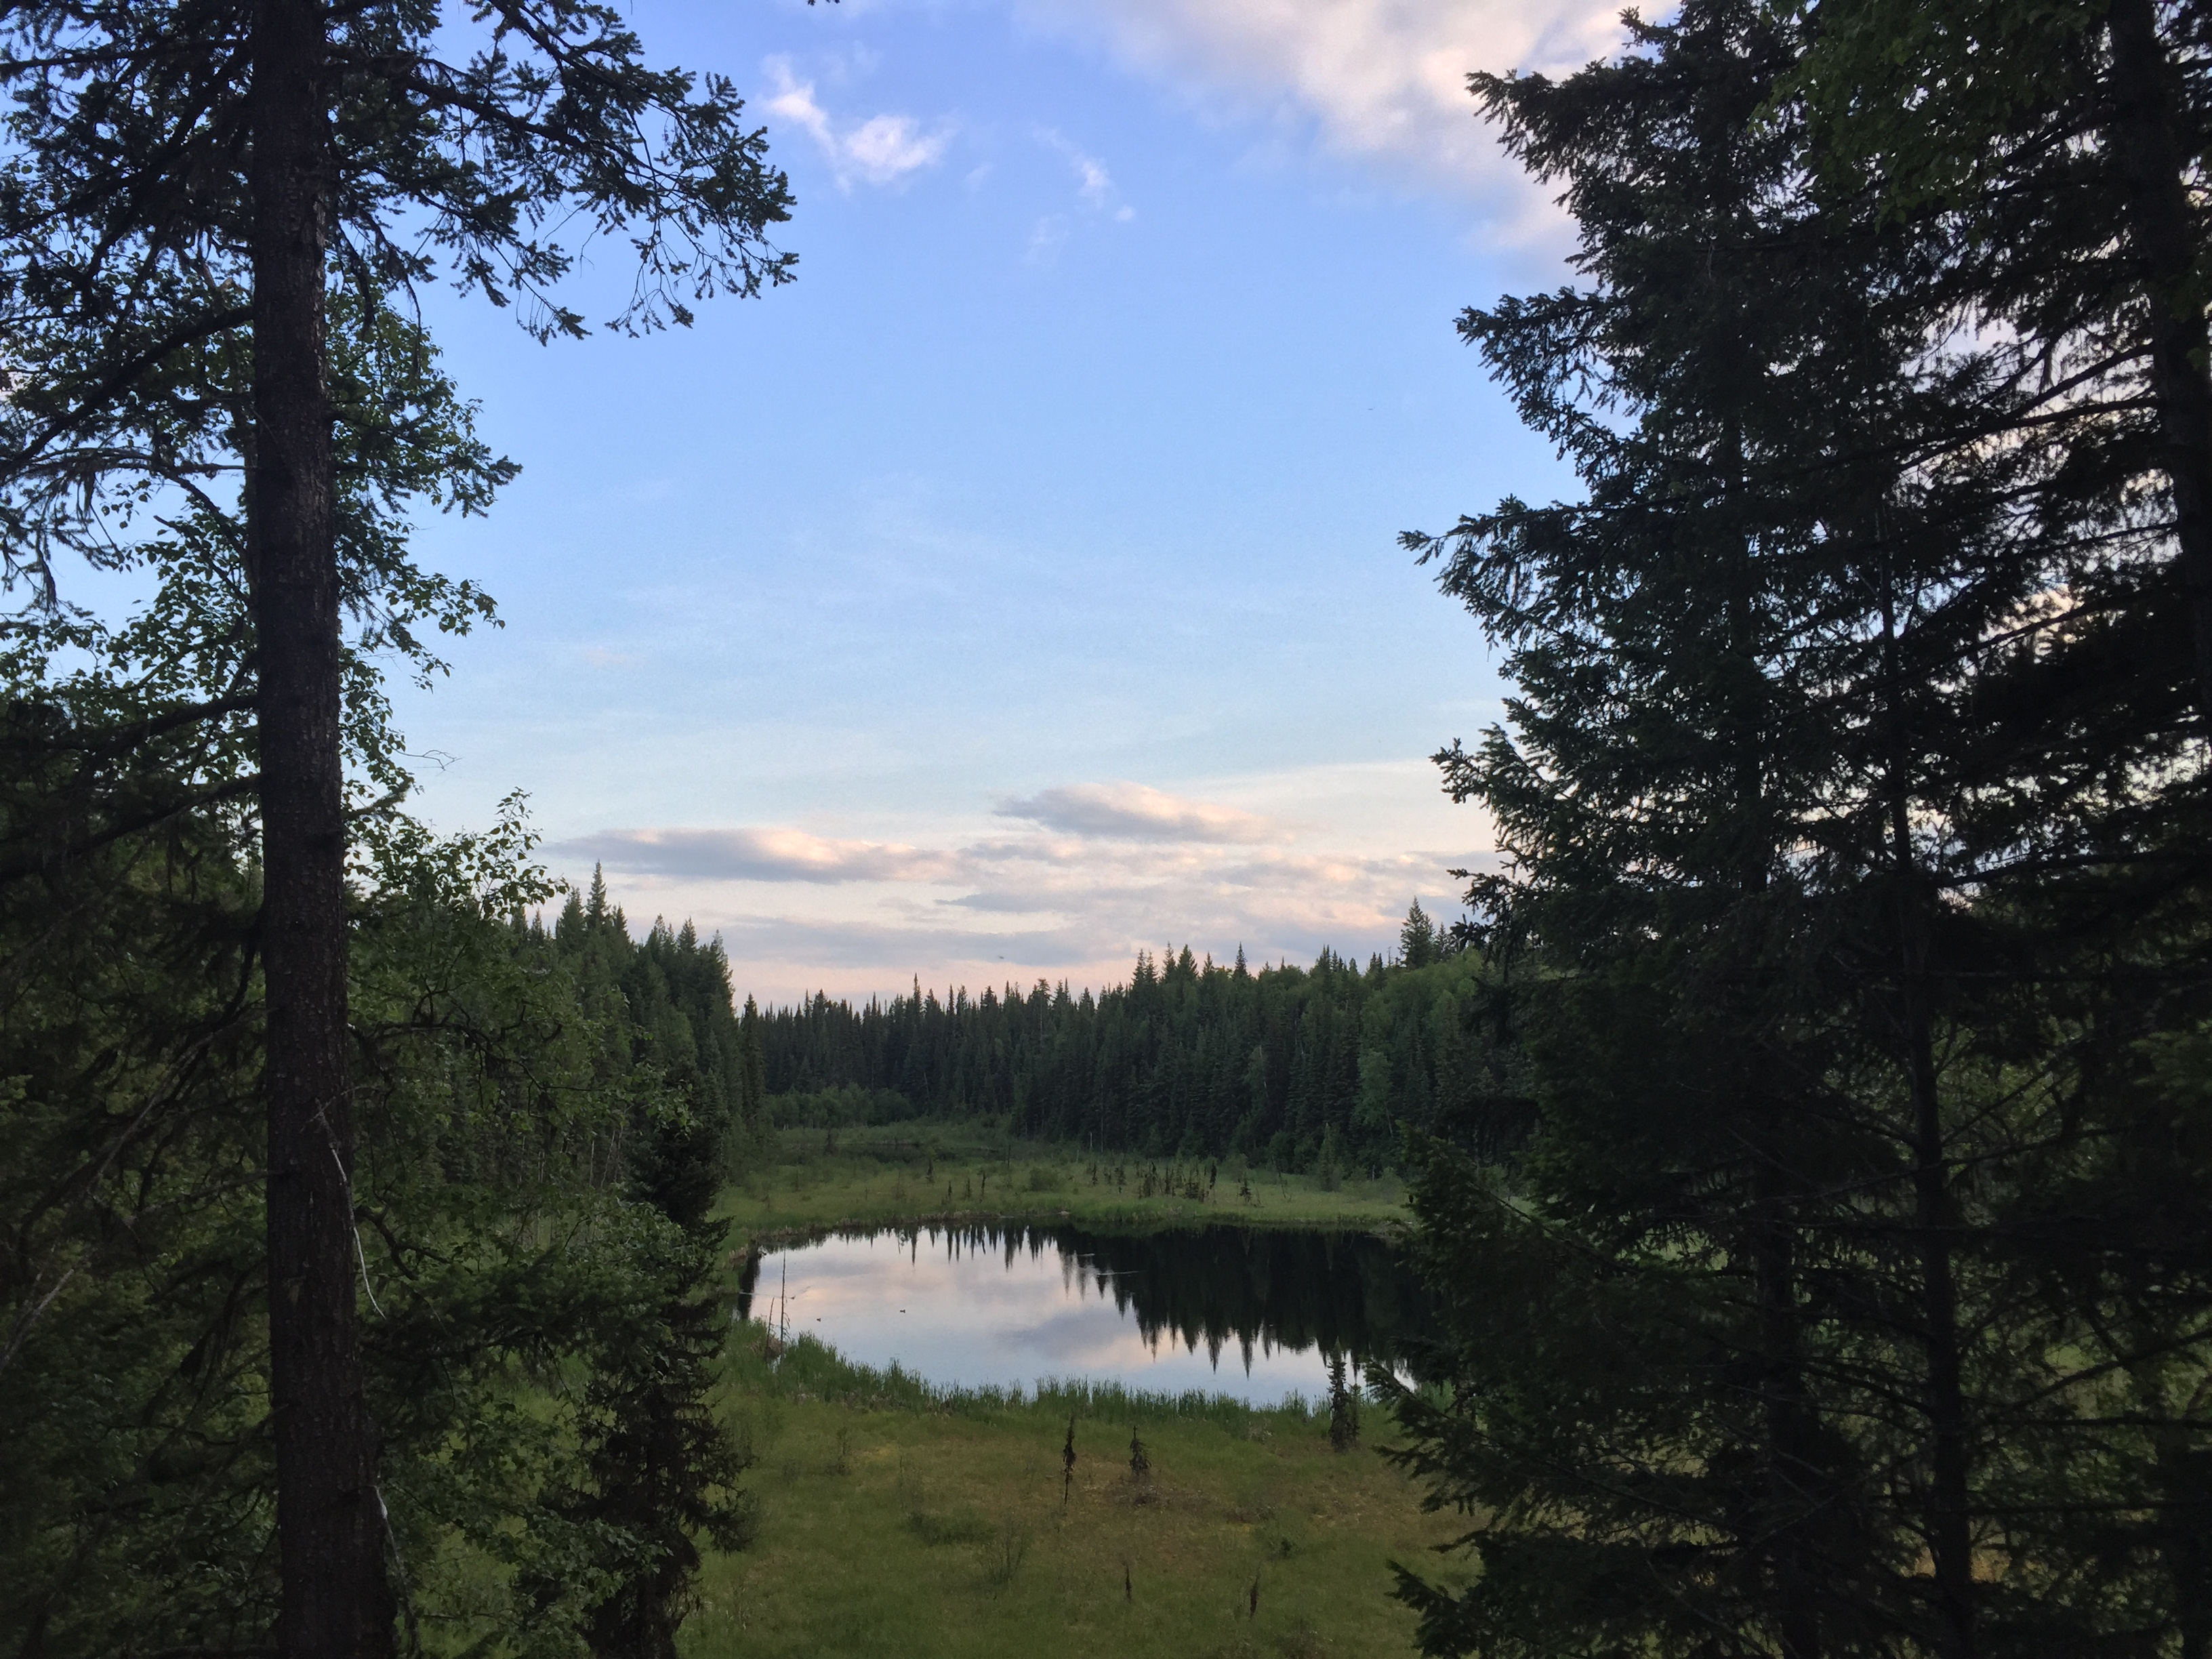 Wetland viewpoint from the Forests for the World/UNBC Connector trail.